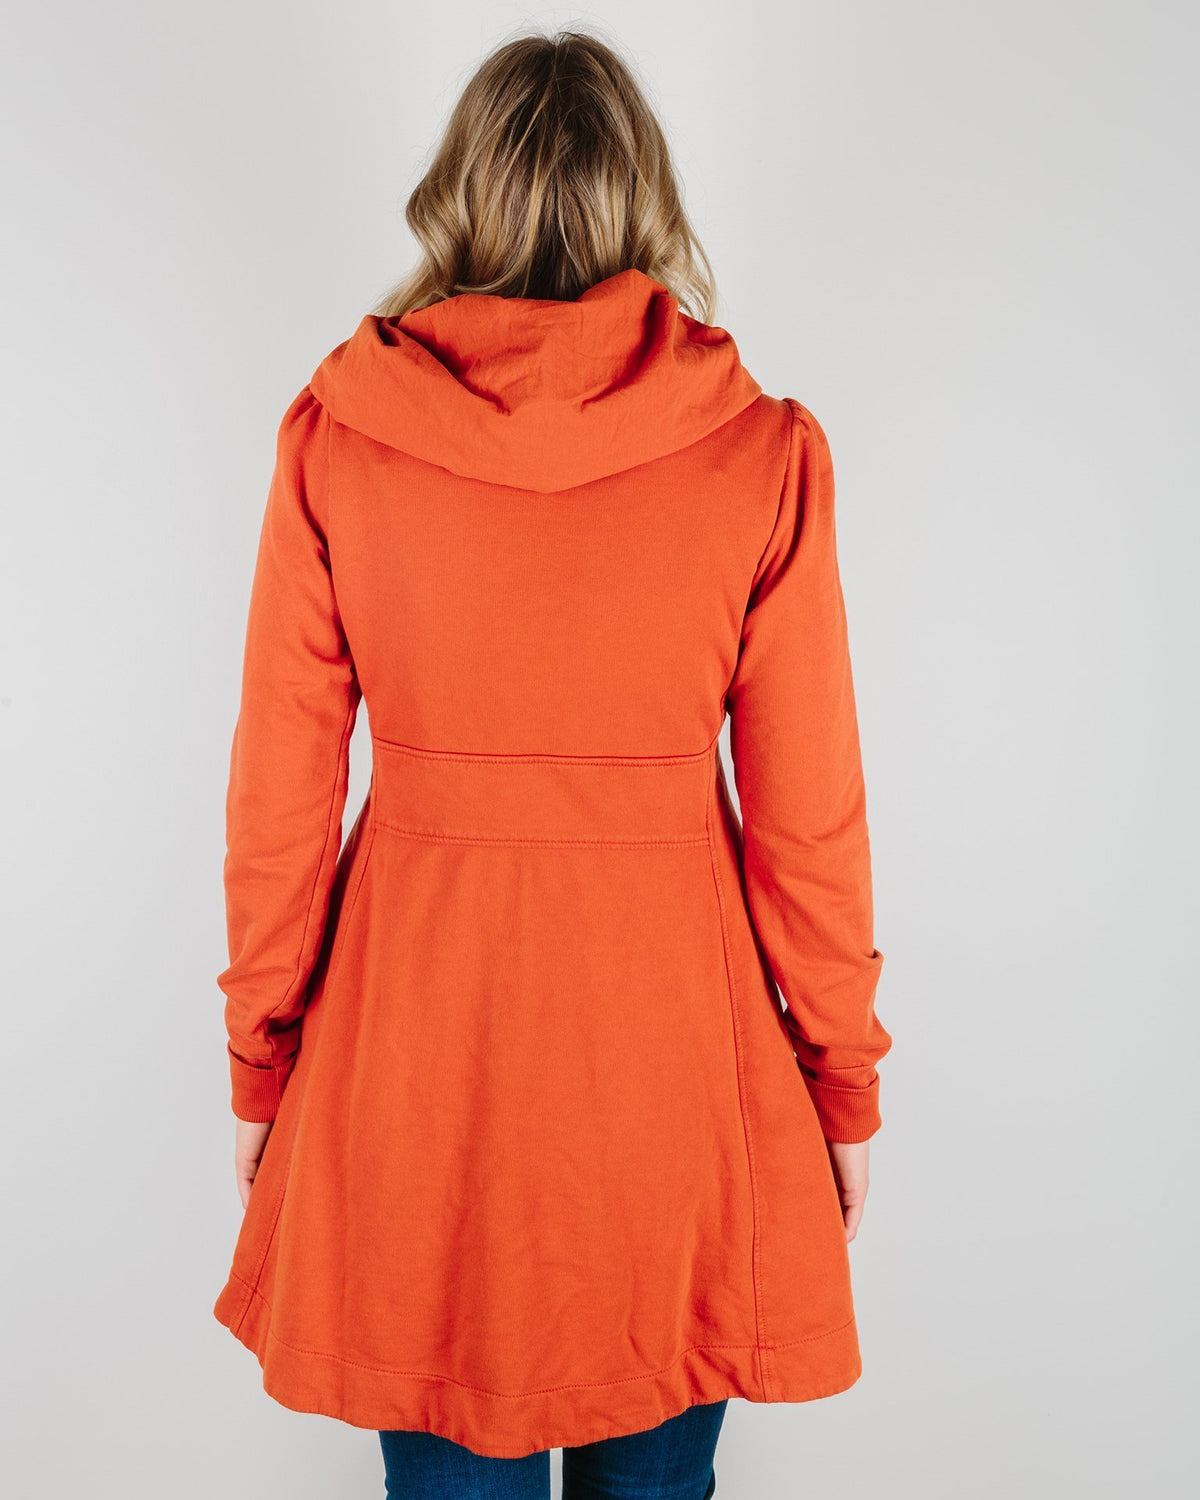 Prairie Underground Clothing Long Cloak Hoodie in Hot Sauce